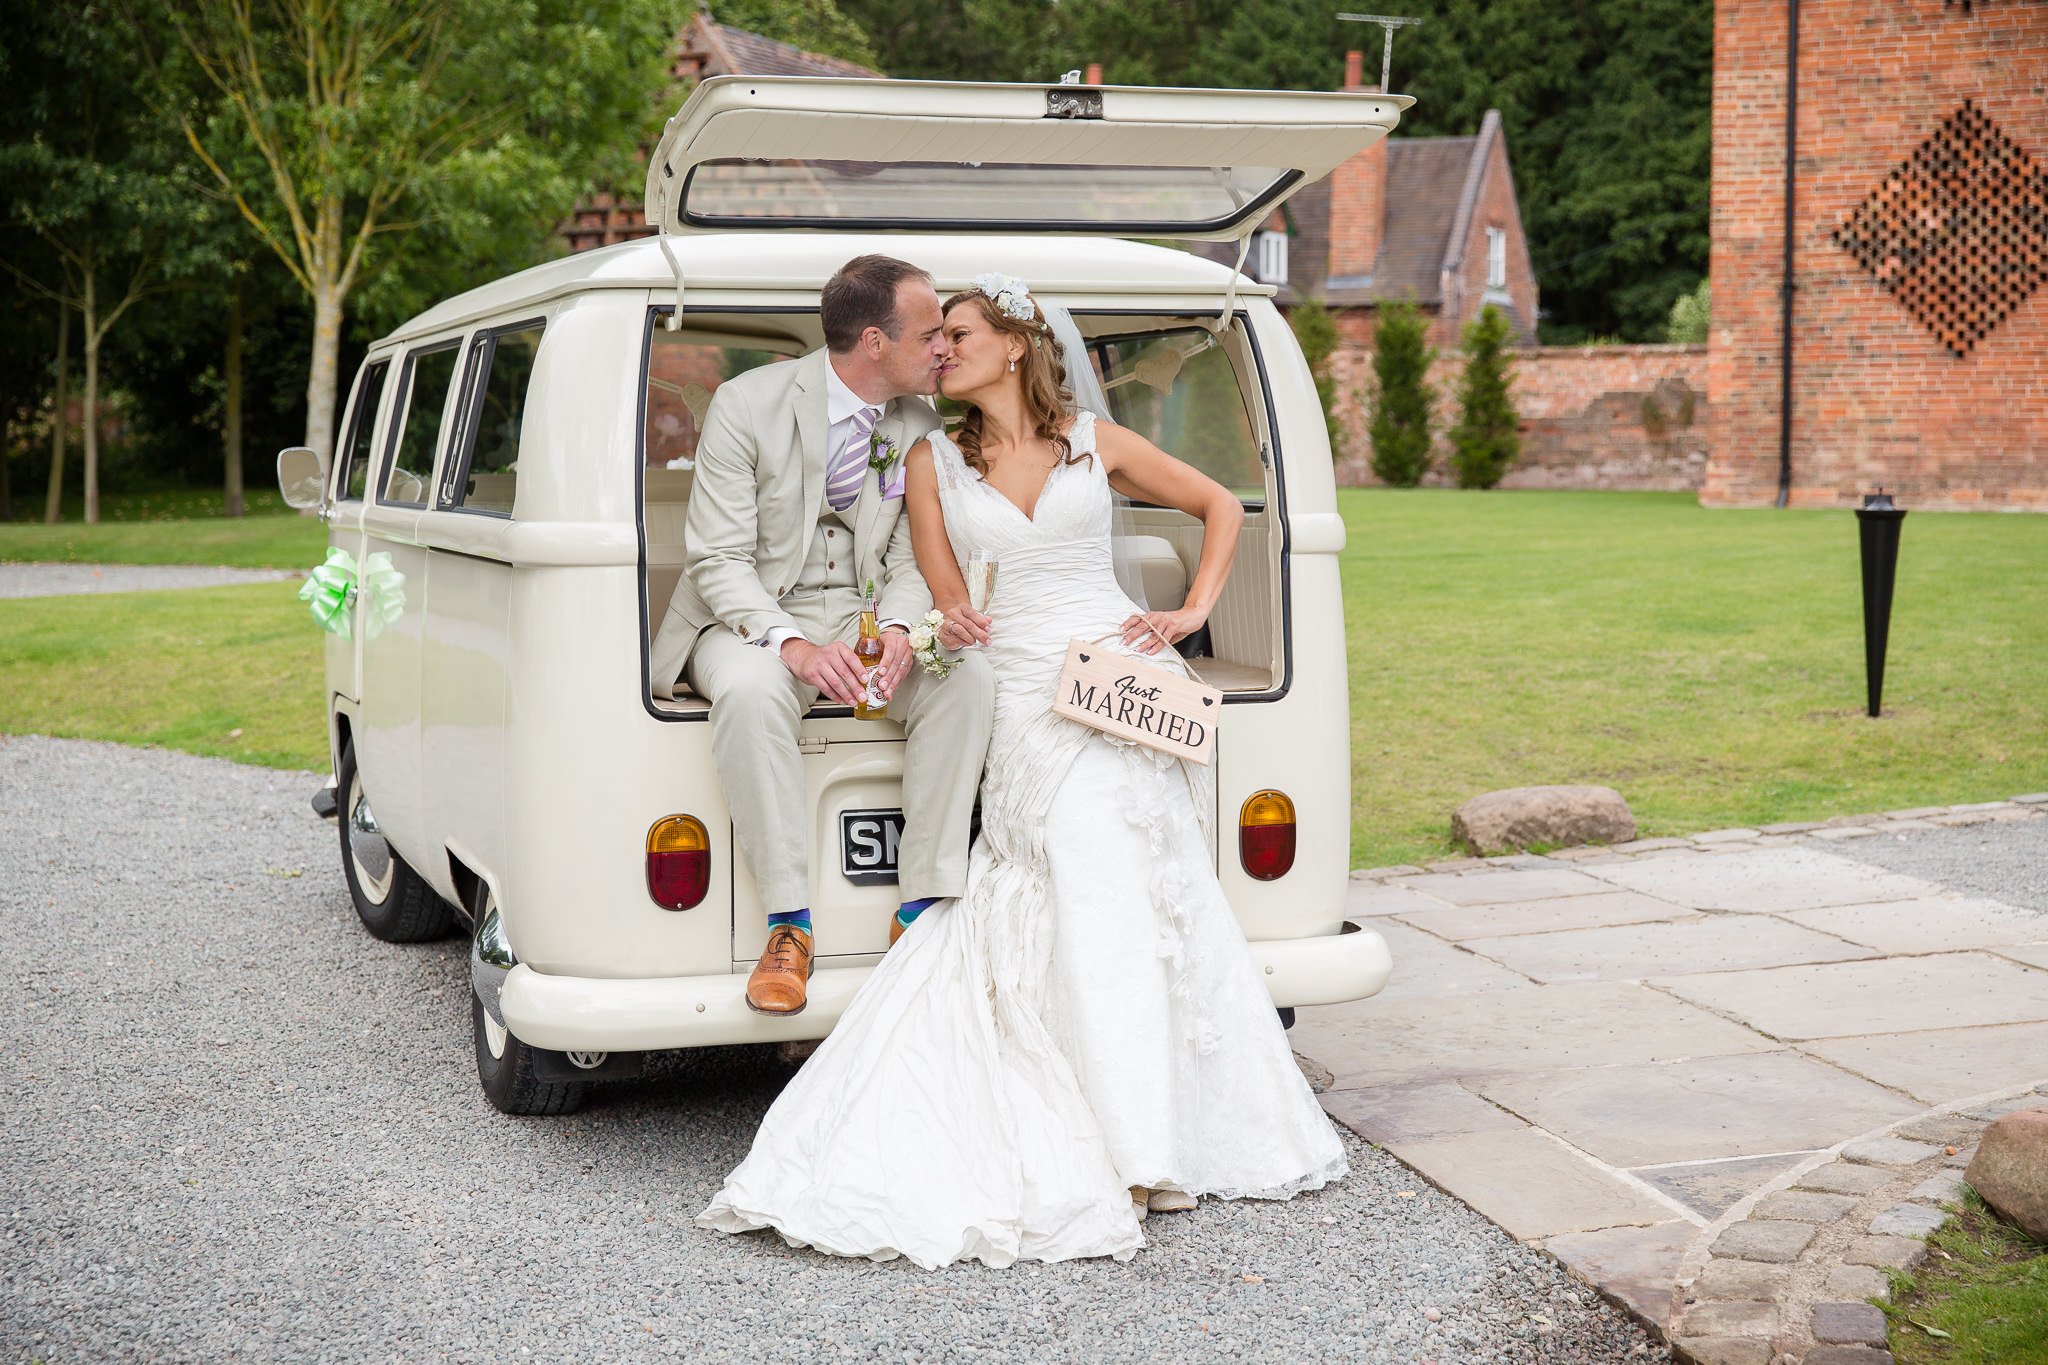 Fun-Relaxed-Wedding-Photography-With-A-Camper-Van